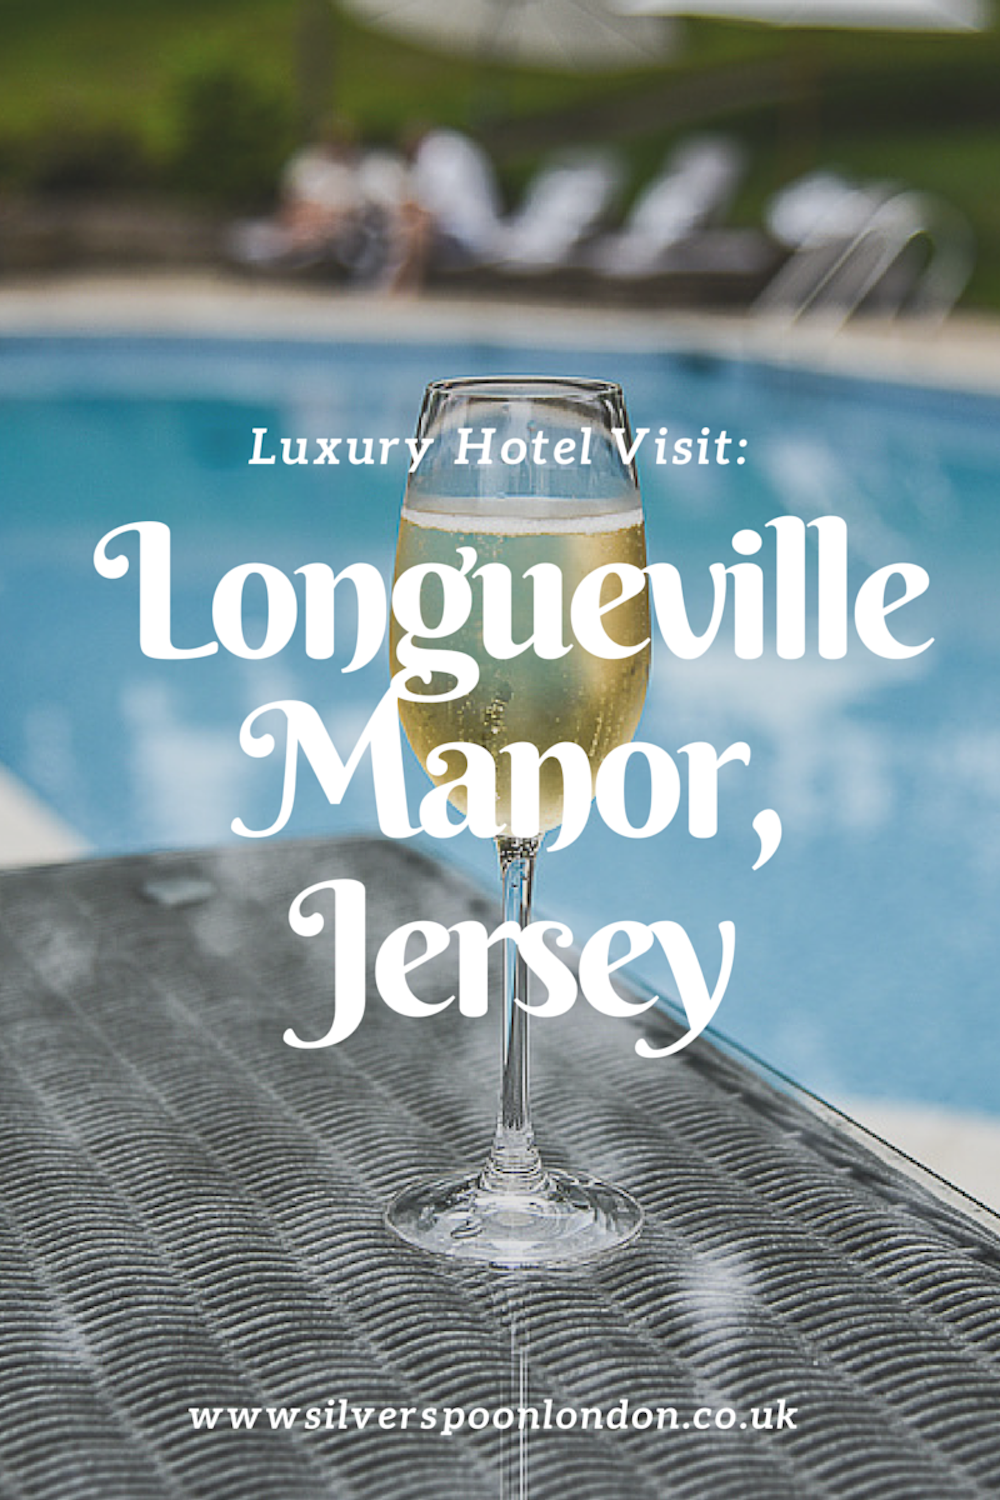 Luxury Hotel Visit: Longueville Manor